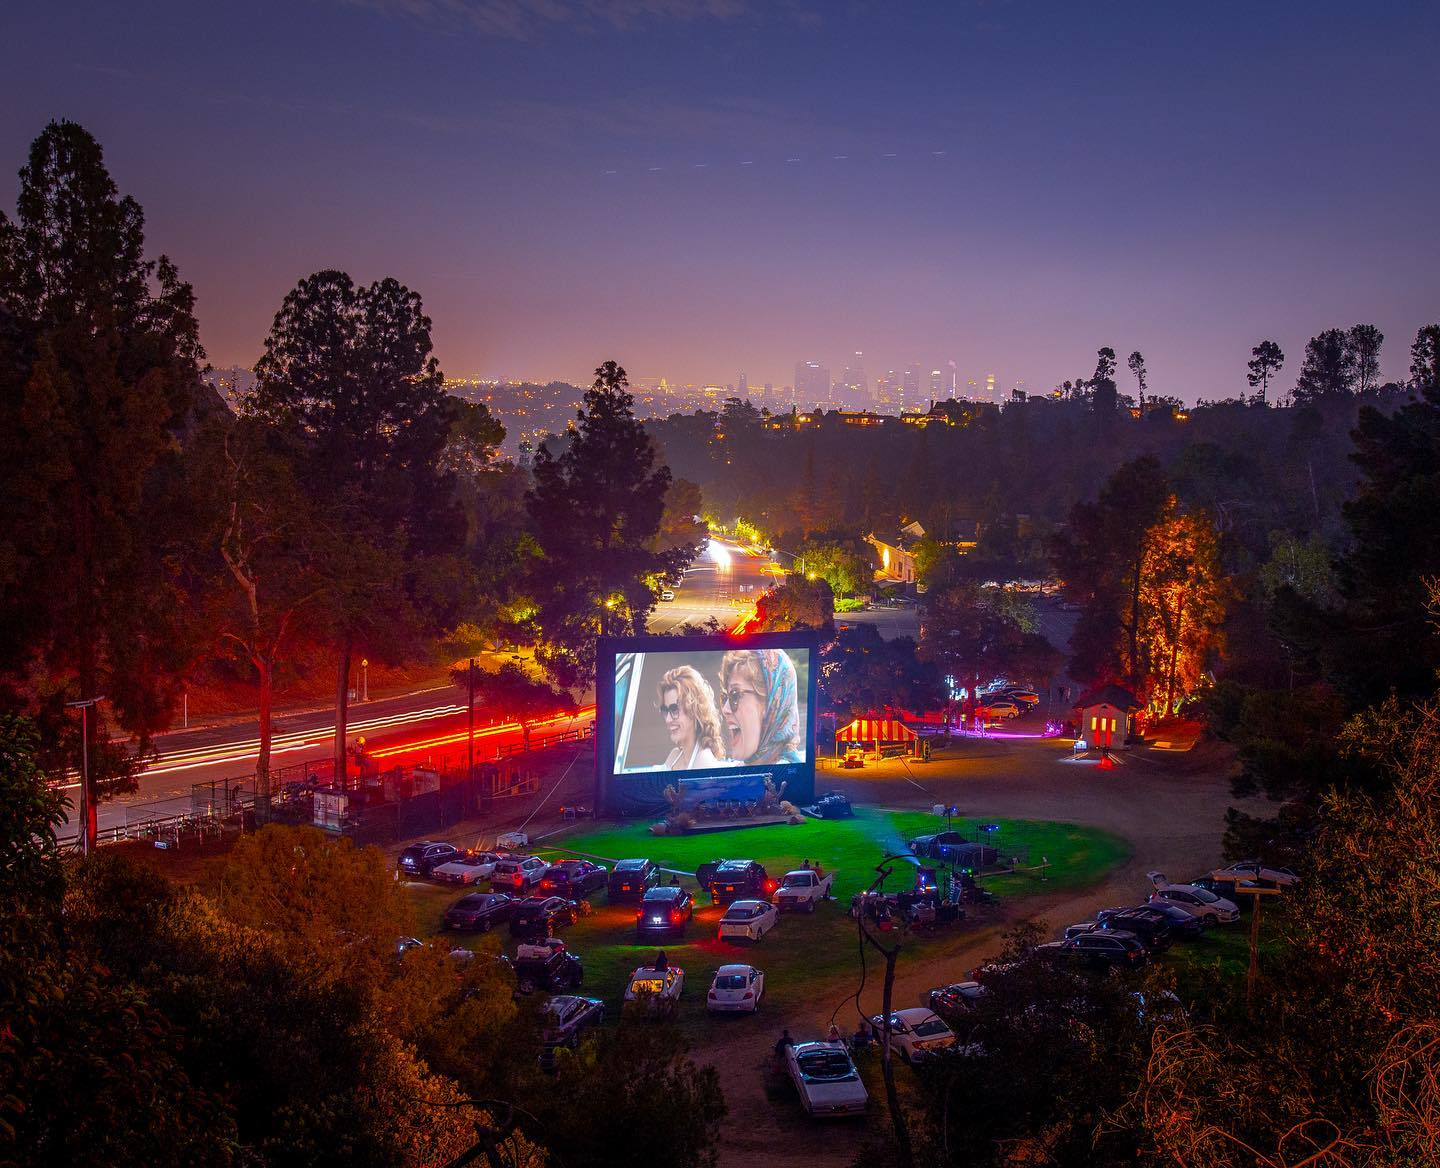 Photos from #Cinespia's Drive-In screening of Thelma & Louise are now posted. Check out our stories or see them all at cinespia.org @gdigm @susansarandon @lafoodbank @mgmstudios Photos by @cutiesatcinespia cinespia